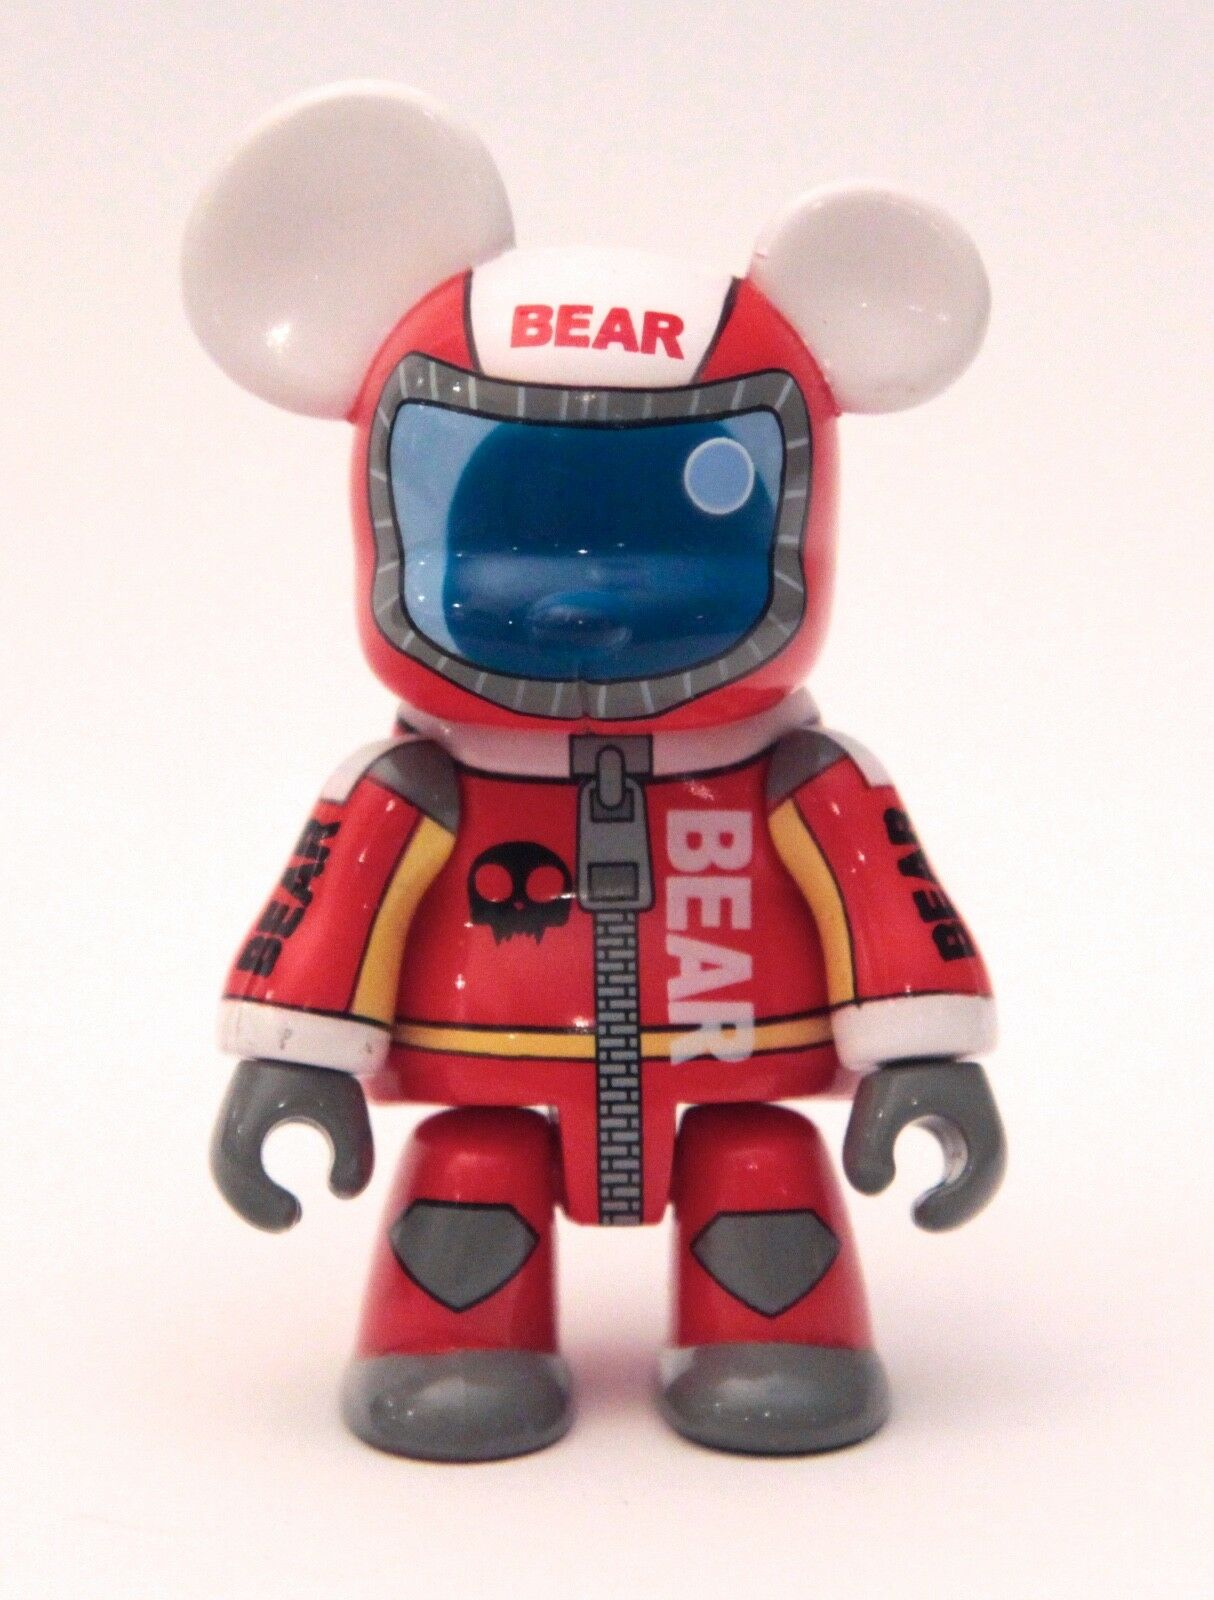 2004 TOY2R   QEE - RED RACER BEAR   VINYL FIGURINE  -  PRE-OWNED